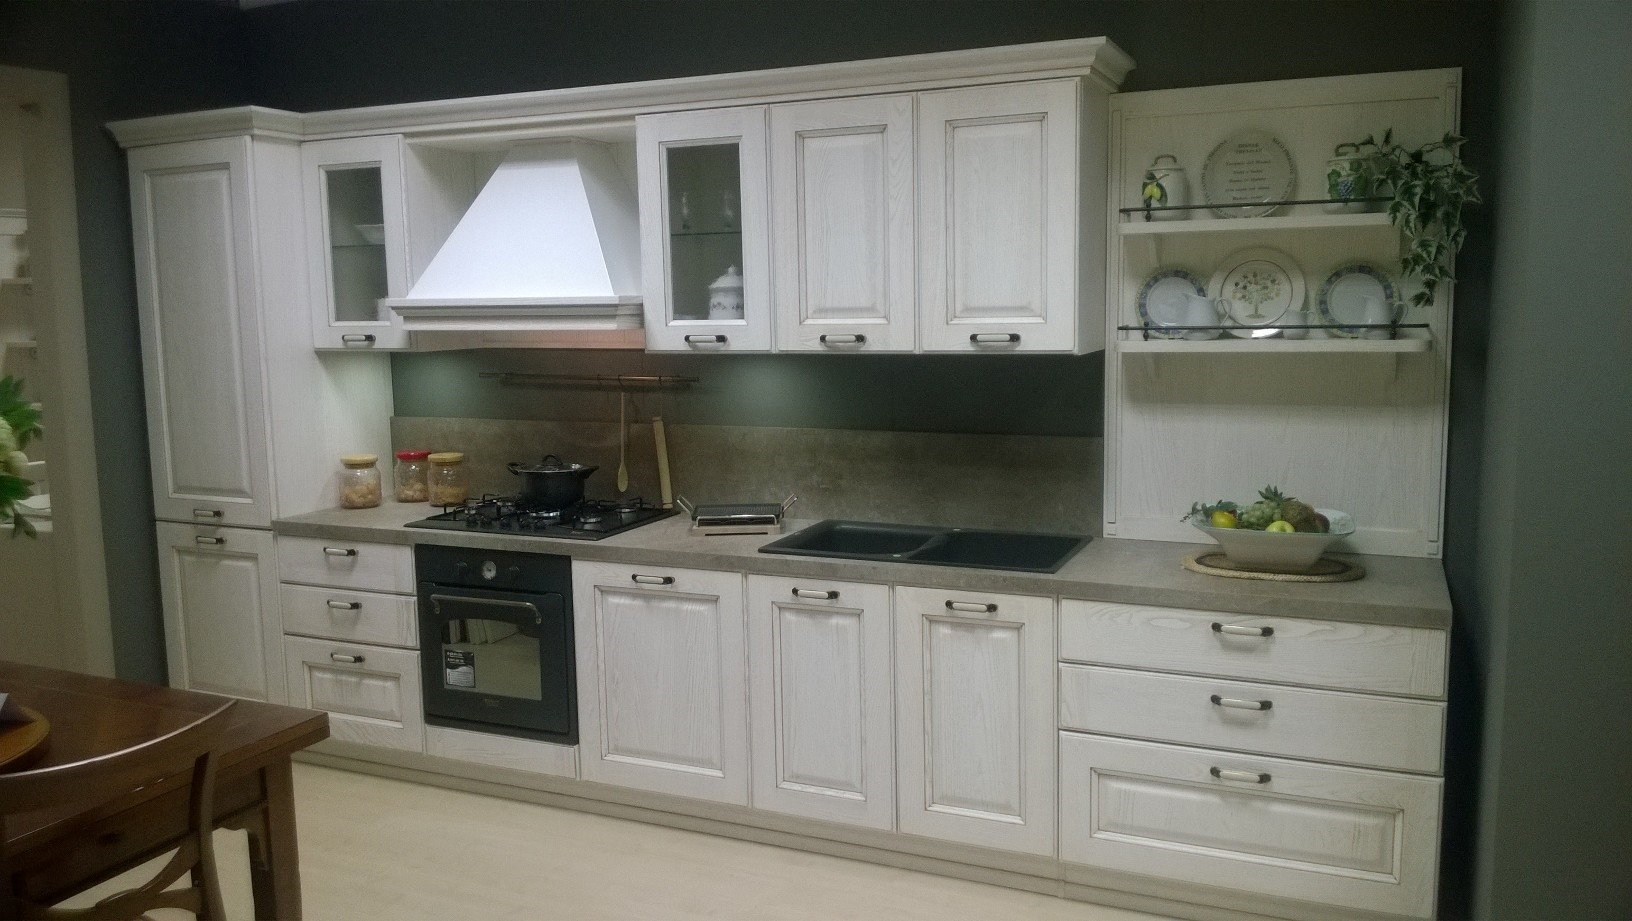 Stunning Dove Comprare Cucina Ideas - bakeroffroad.us ...